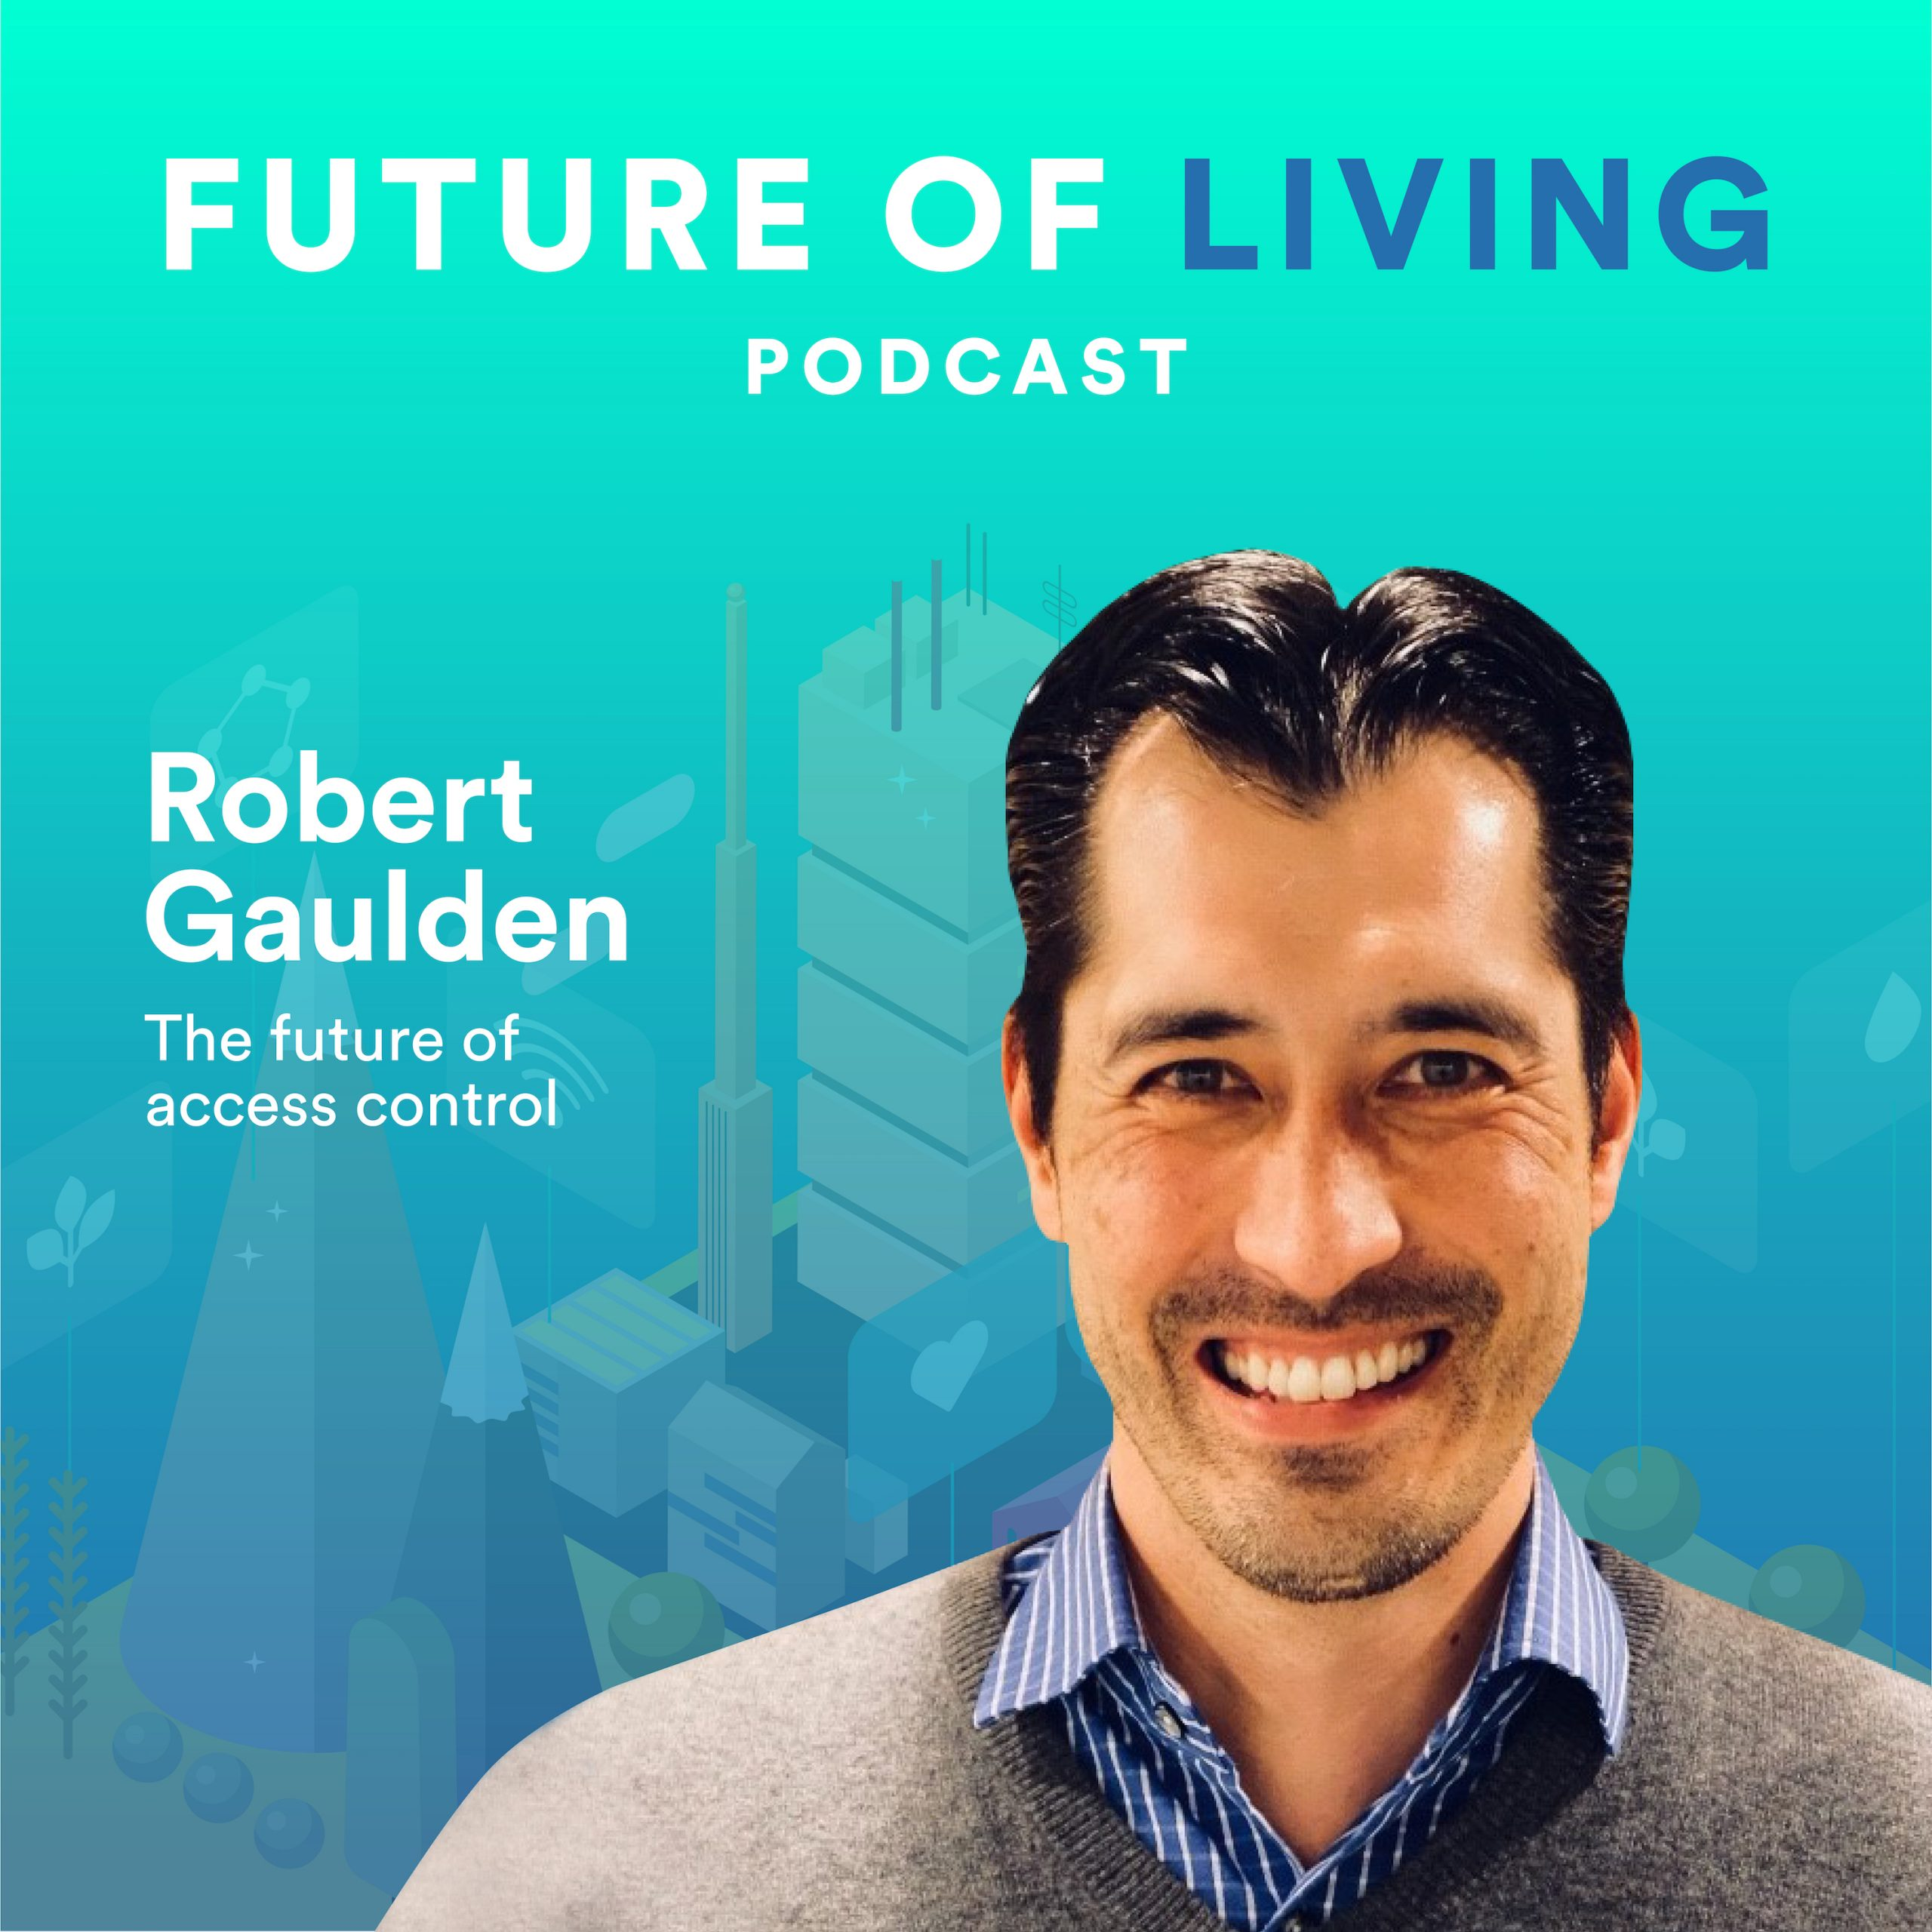 Robert Gaulden on the Future of Access Control